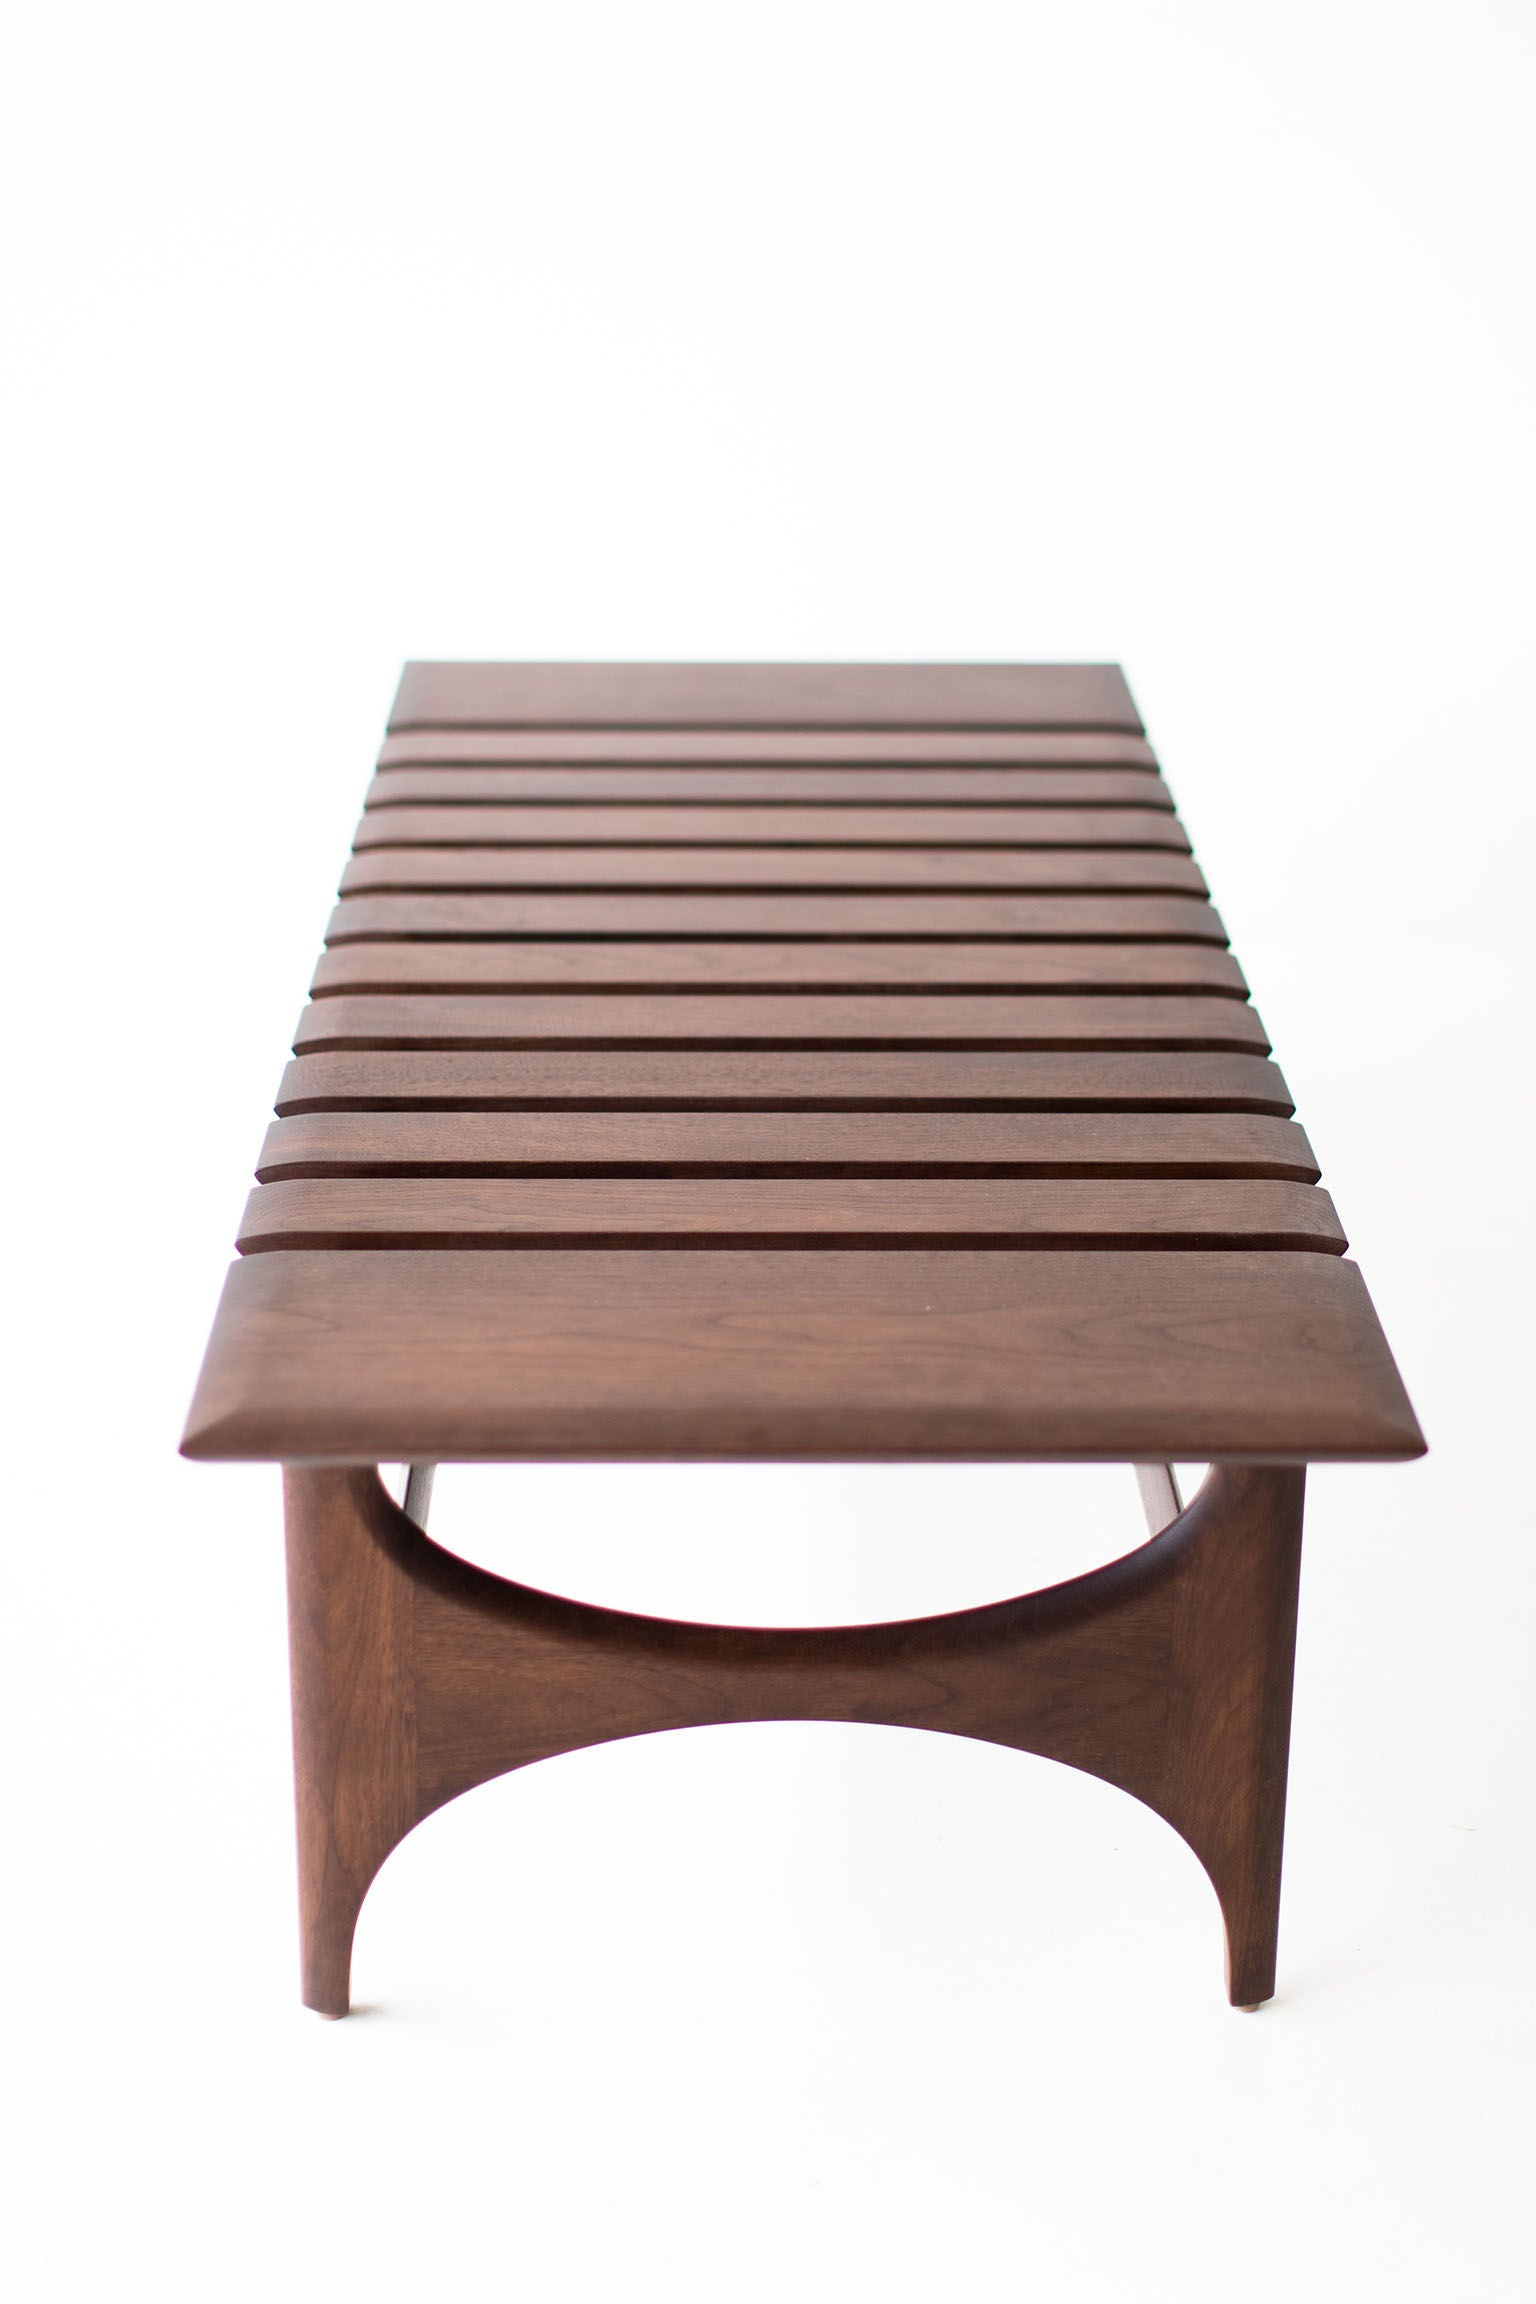 modern-bench-craft-associates-furniture-06